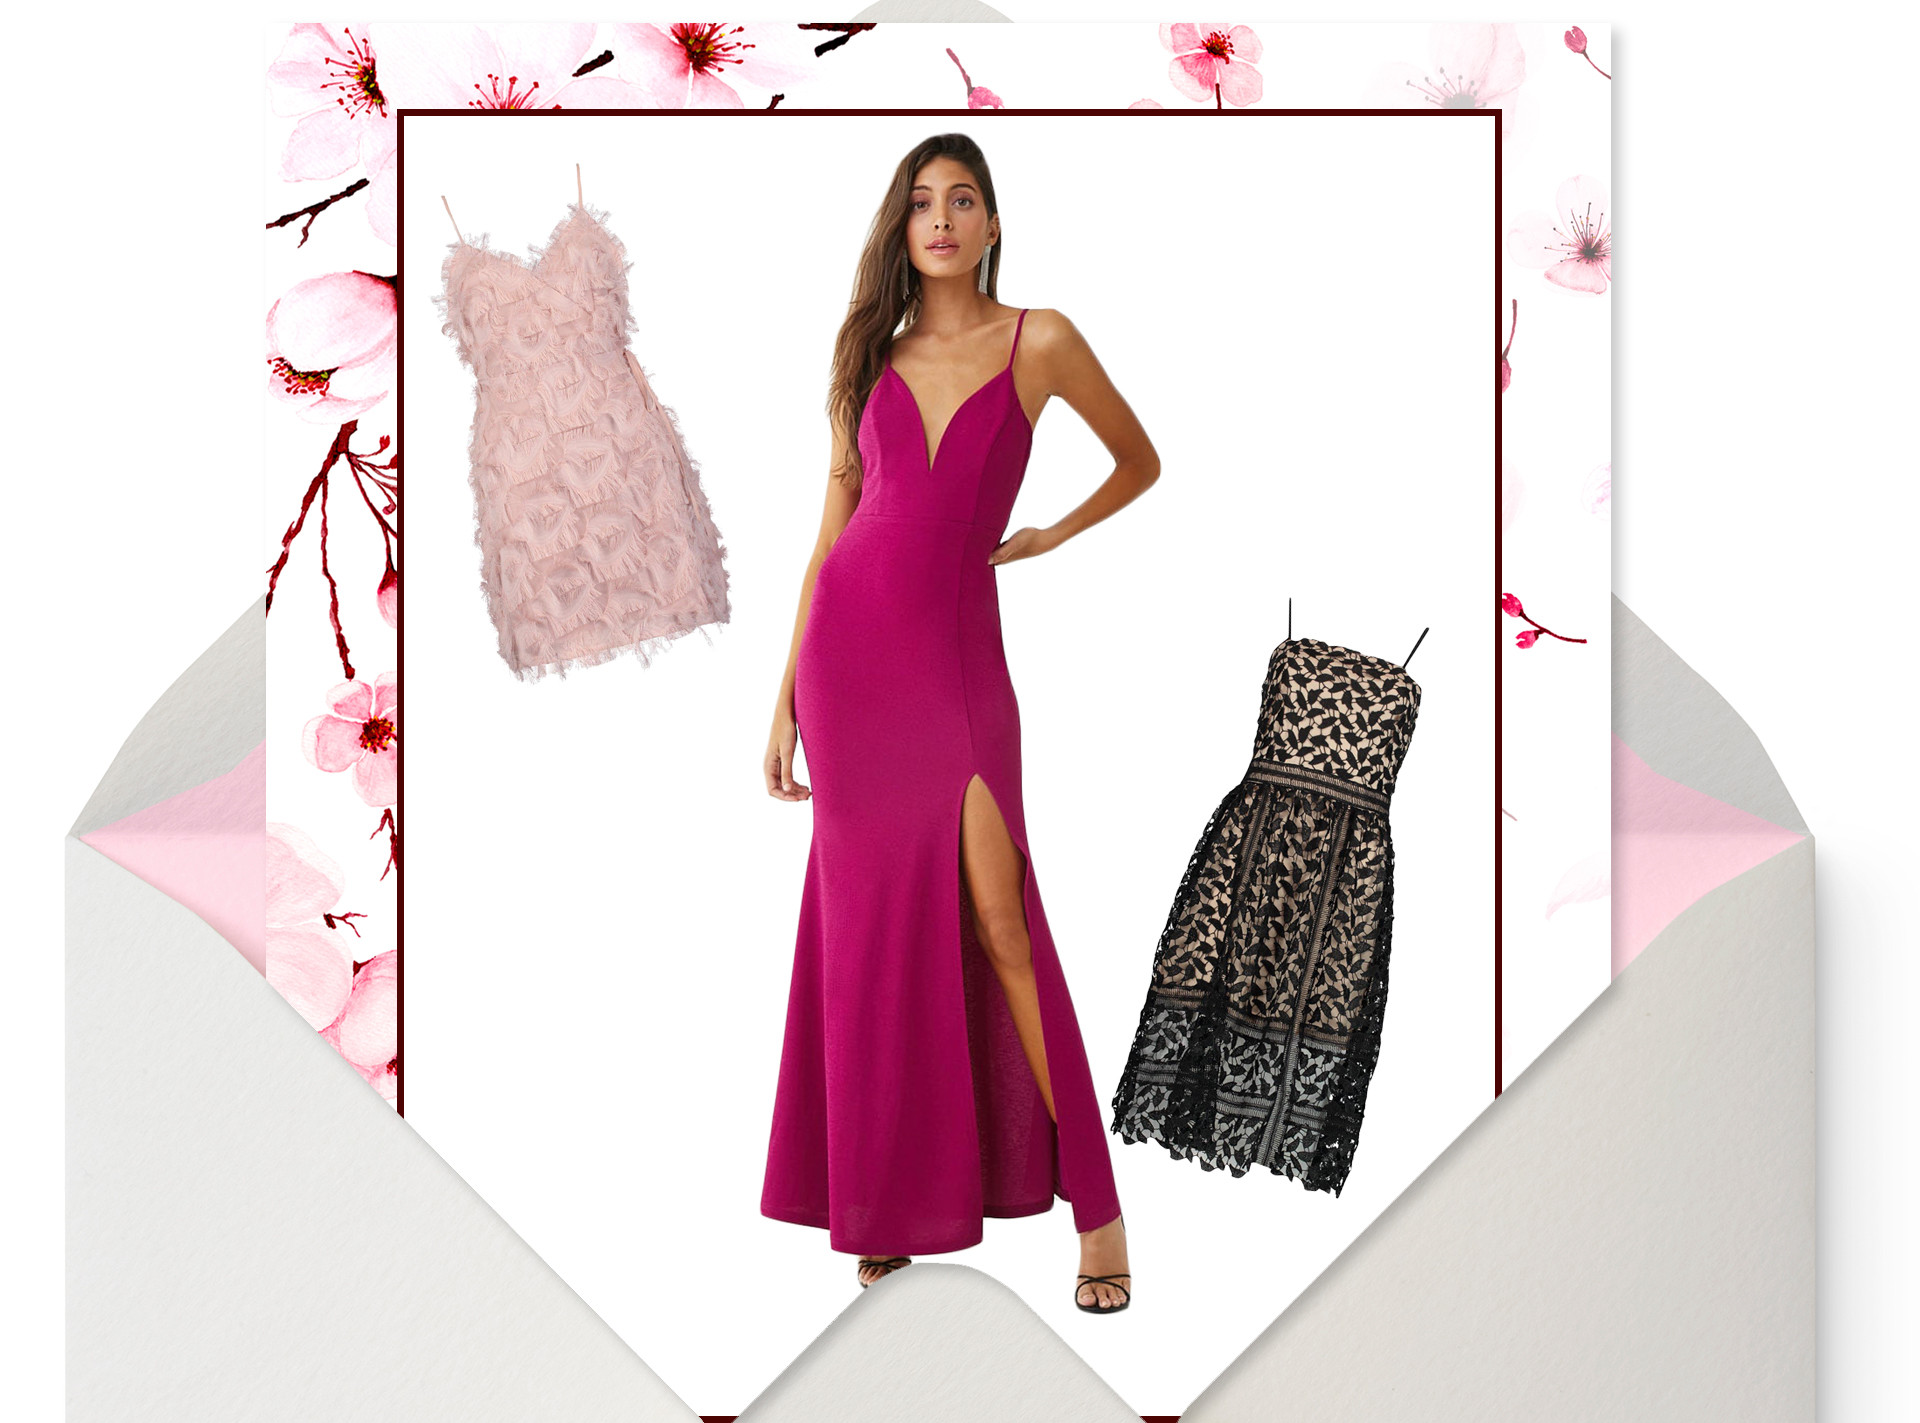 Spring Wedding Guest Dresses.Wedding Guest Dresses Under 50 E News